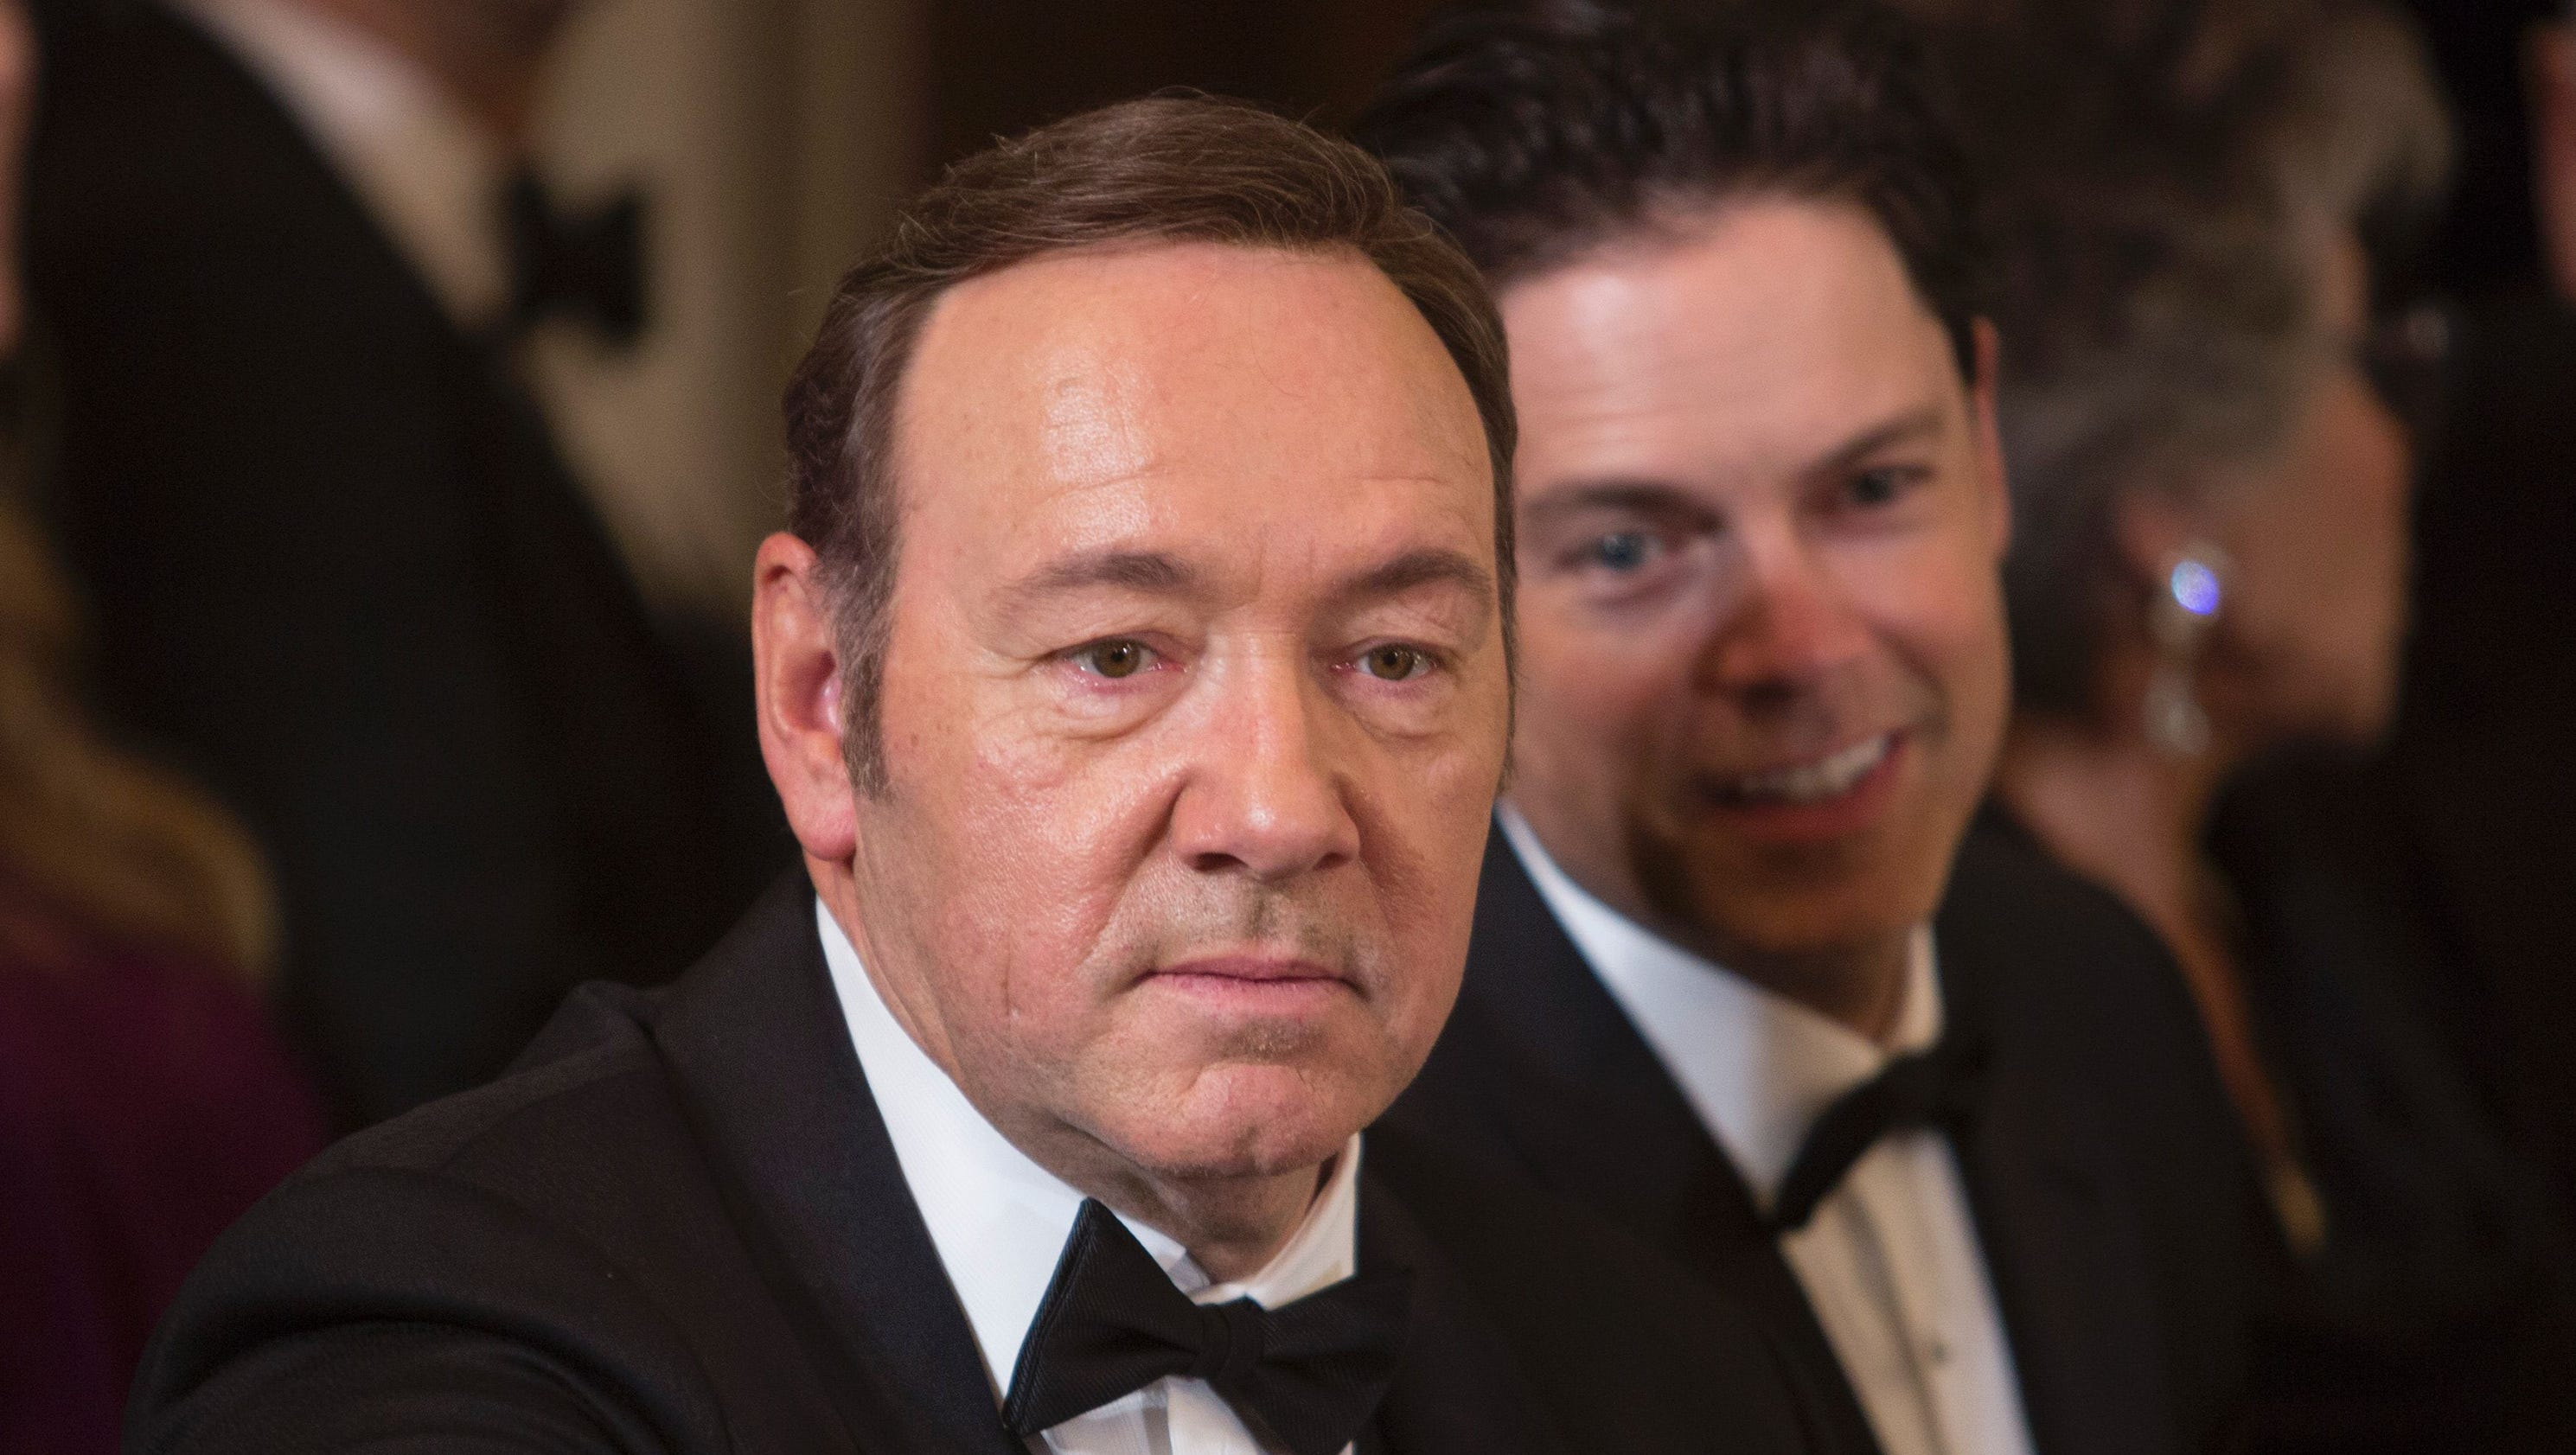 resume When Will Scandal Resume kevin spacey scandal house of cards hopes to resume production soon